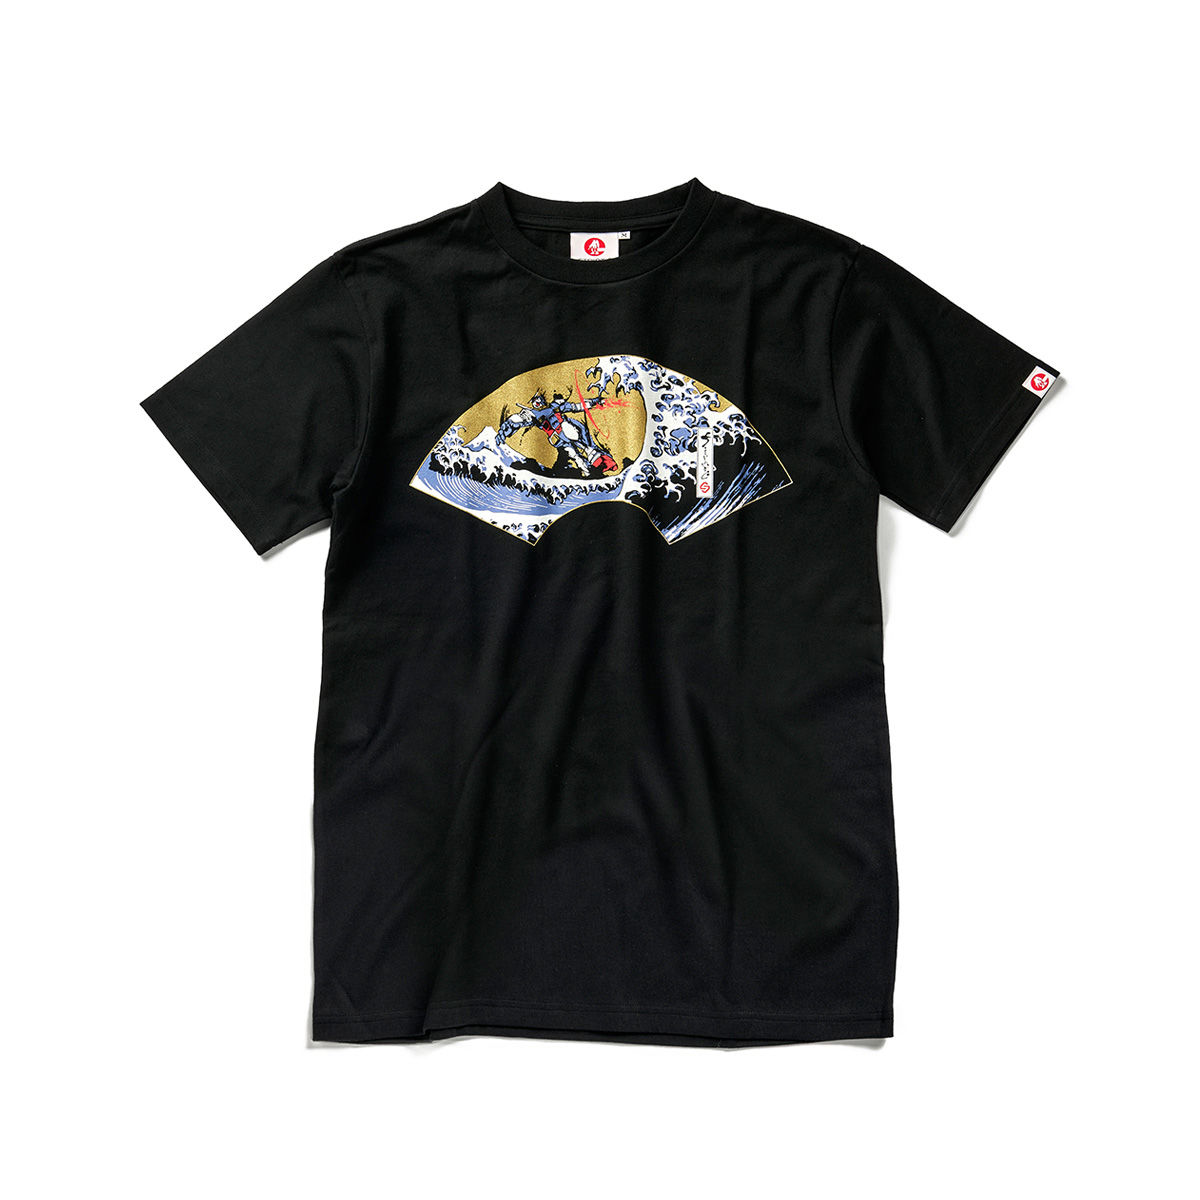 STRICT-G JAPAN GUNDAM AND THE BIG WAVE T-SHIRT